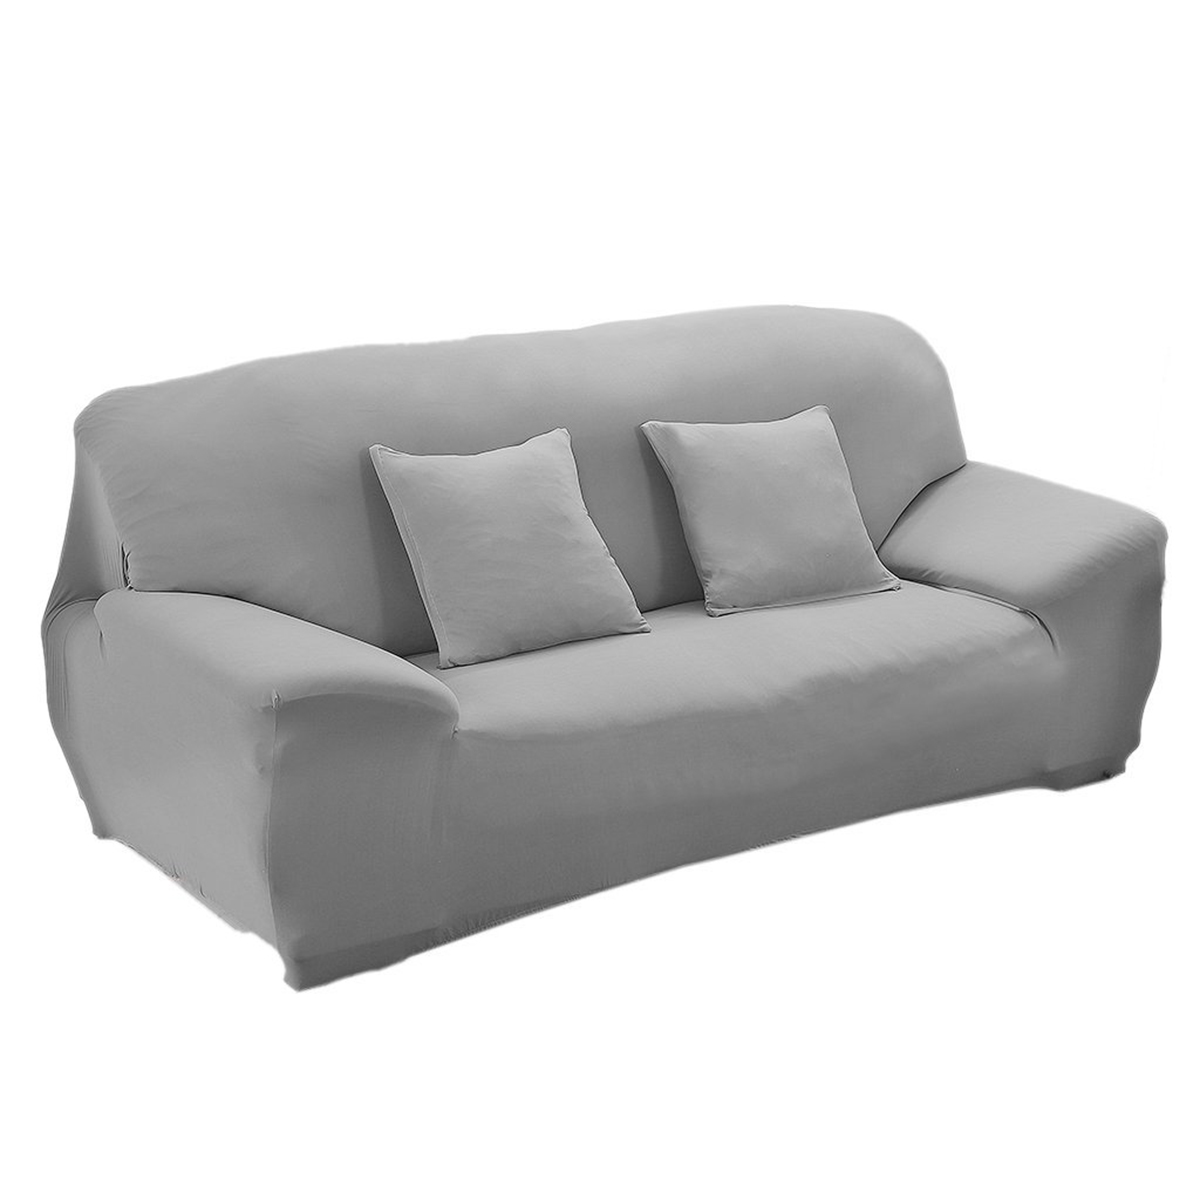 Online Get Cheap Chair Sofa Covers Alibaba Group